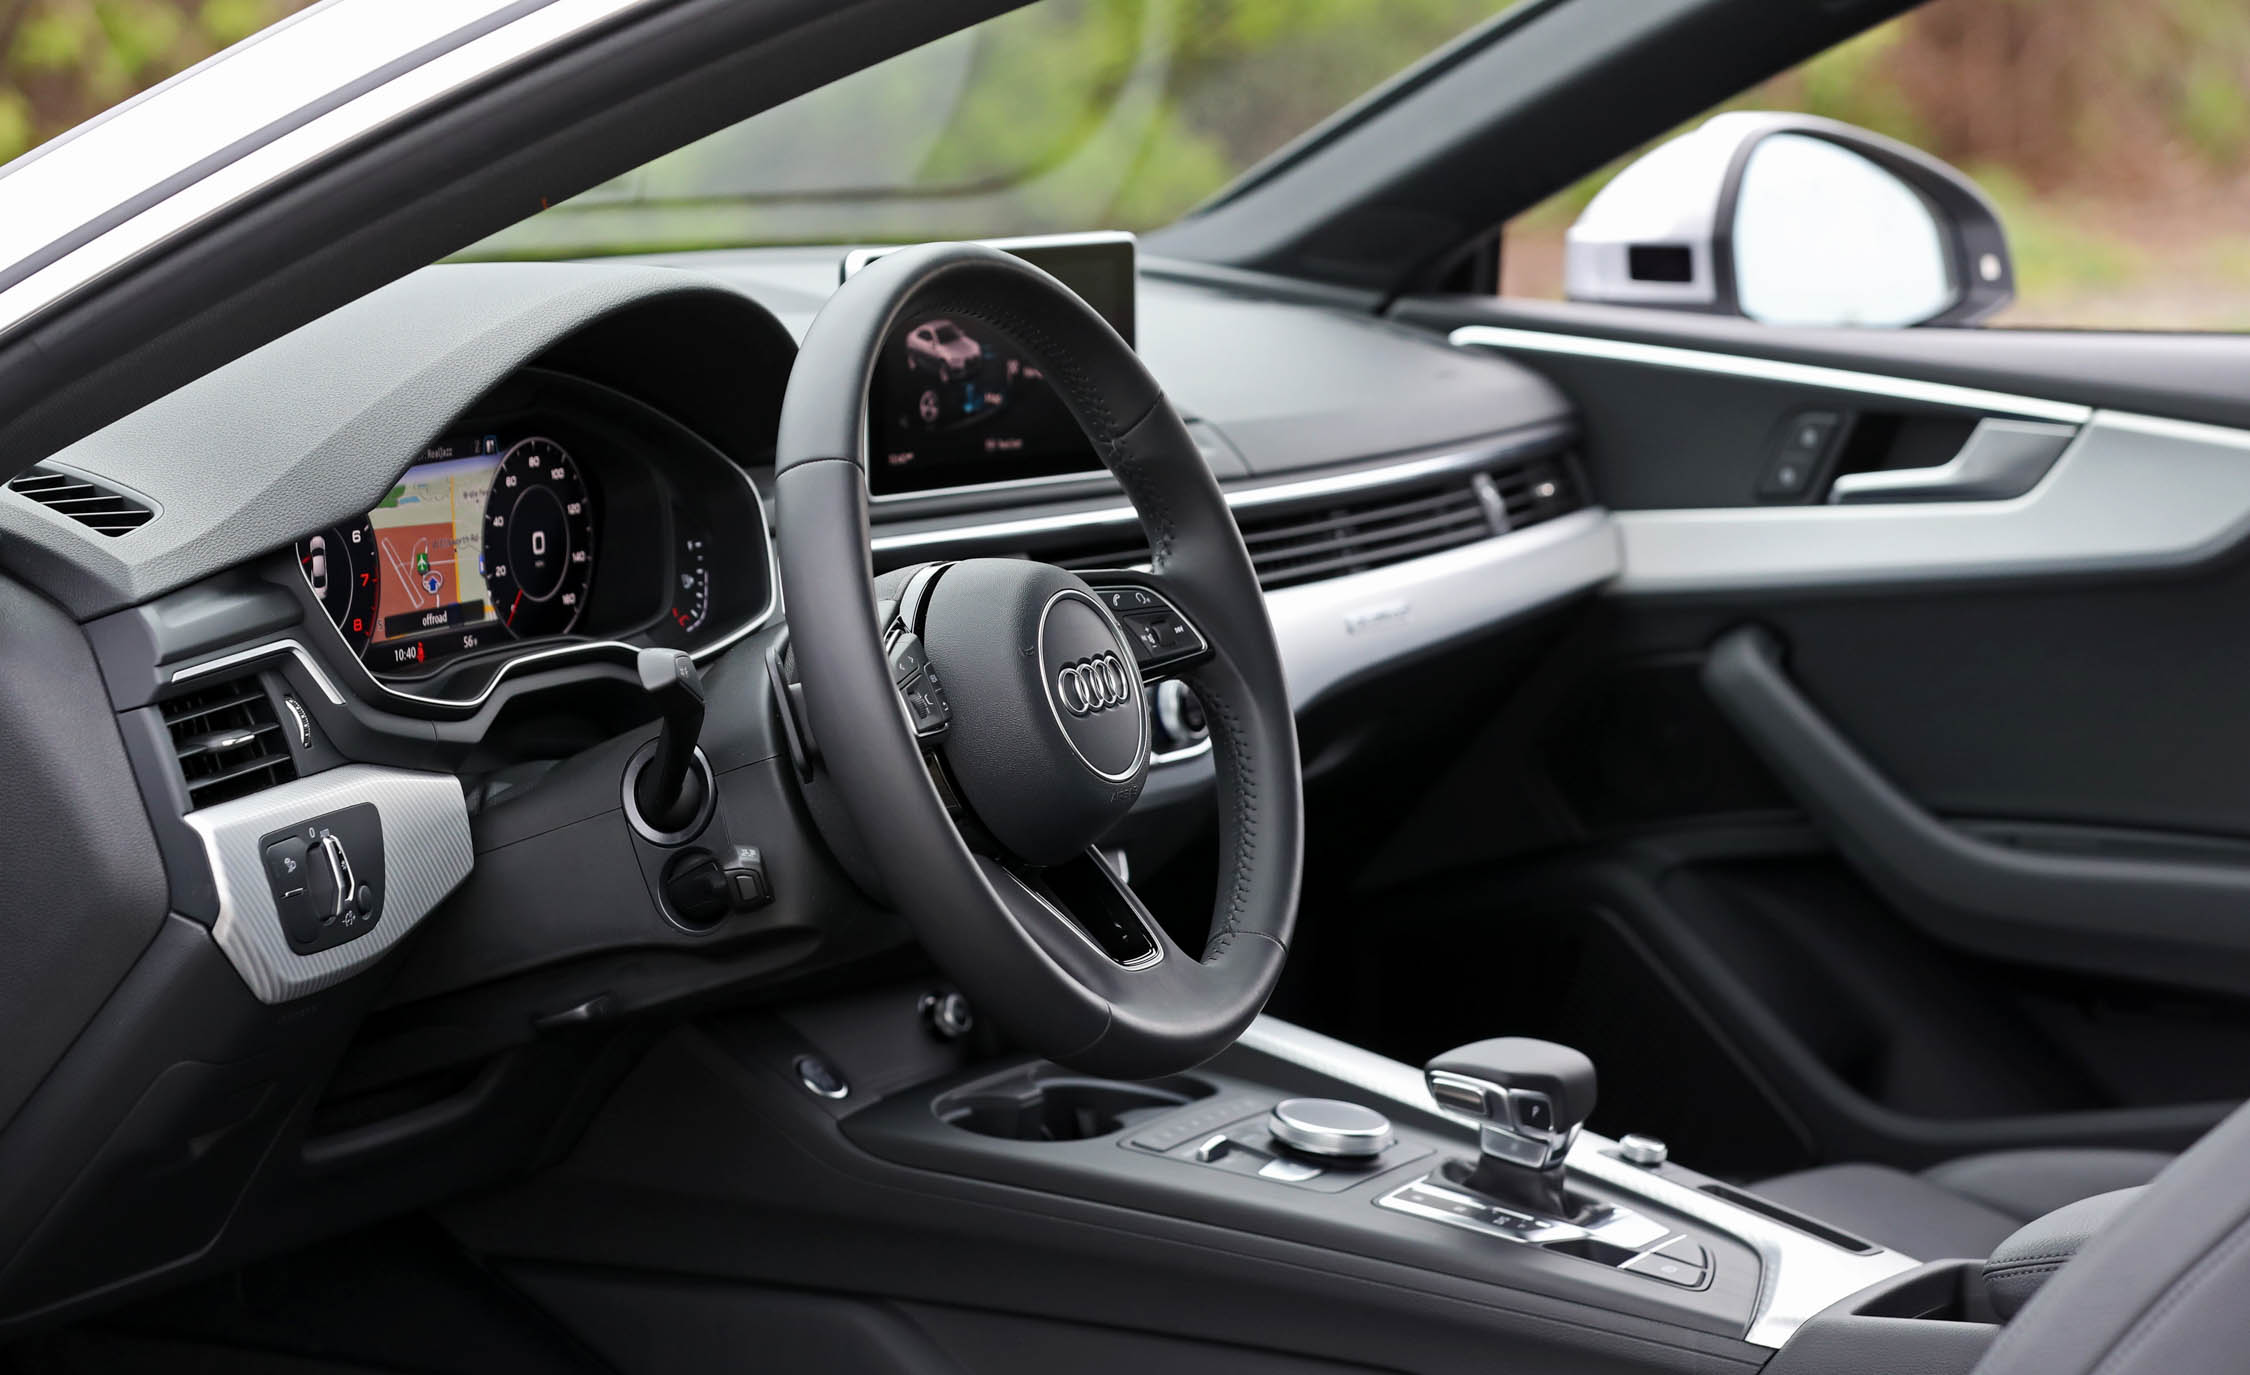 2018 Audi A5 Coupe Interior View Steering And Dash (Photo 37 of 50)